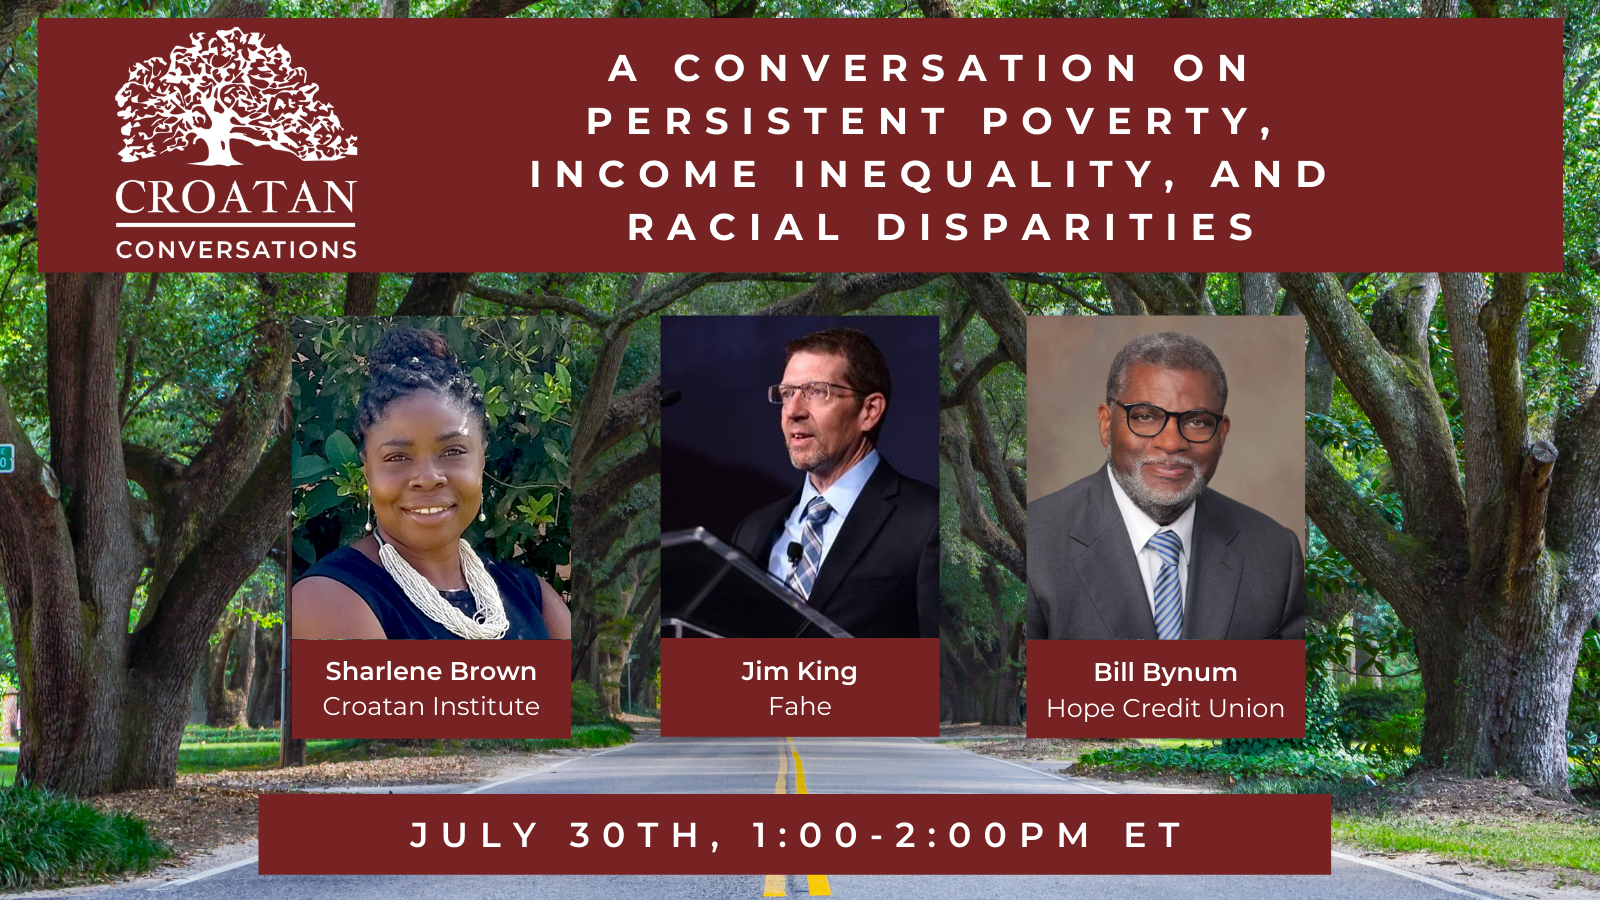 A Conversation on Persistent Poverty, Income Inequality, and Racial Disparities